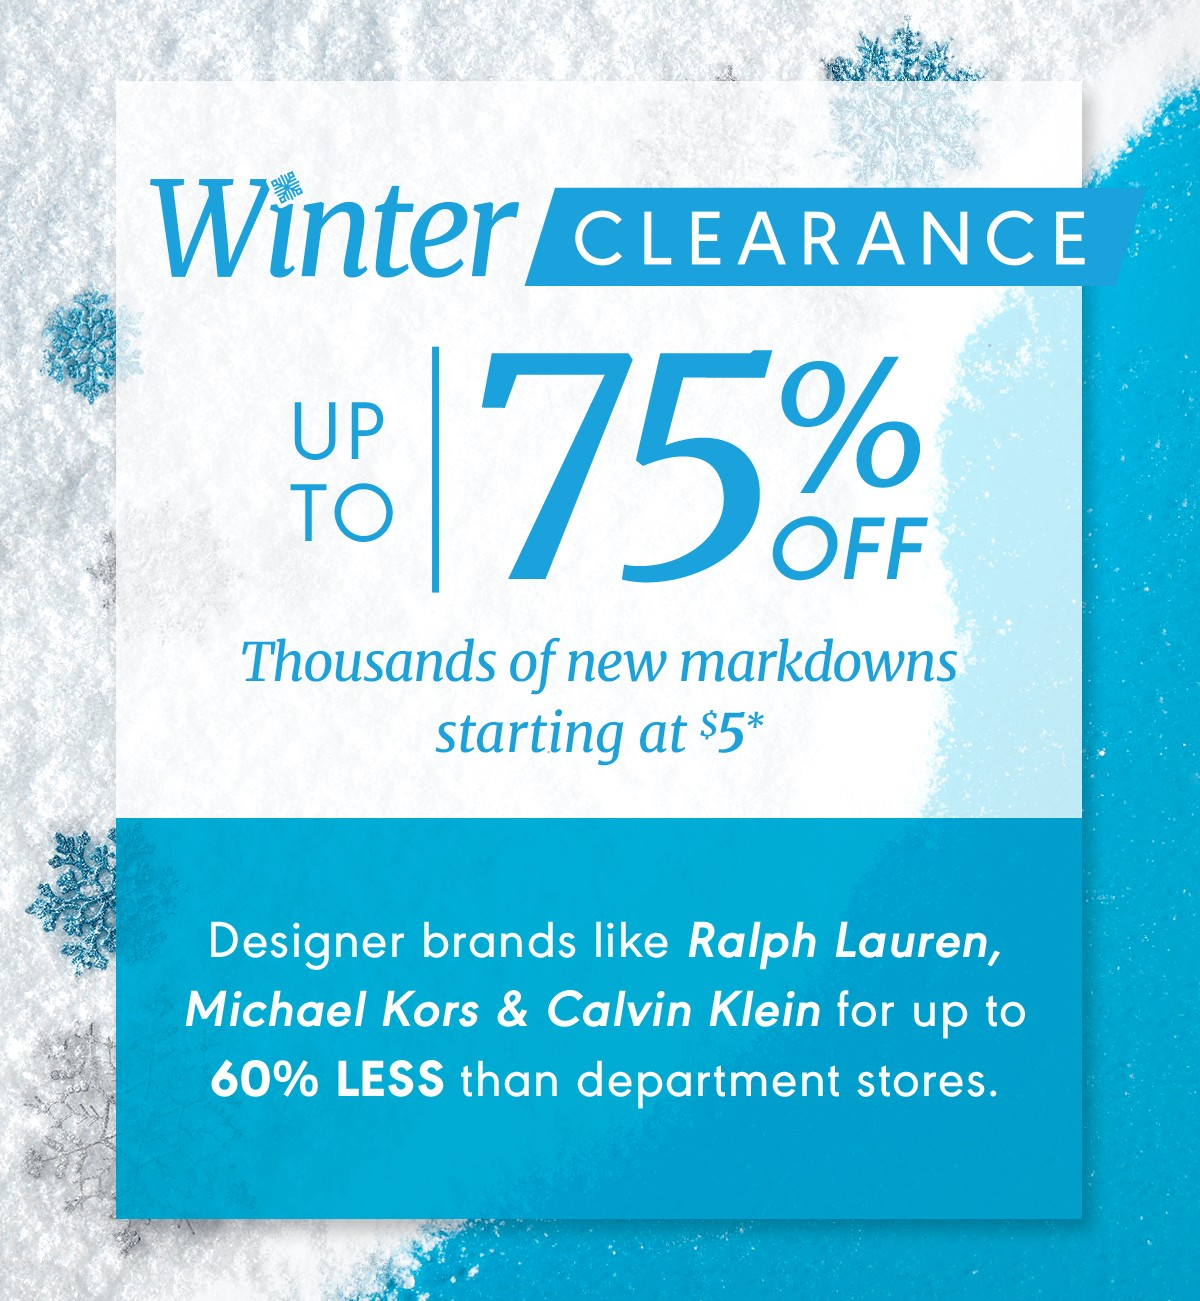 Winter Clearance. Up to 75% off. Thousands of new markdowns starting at $5*